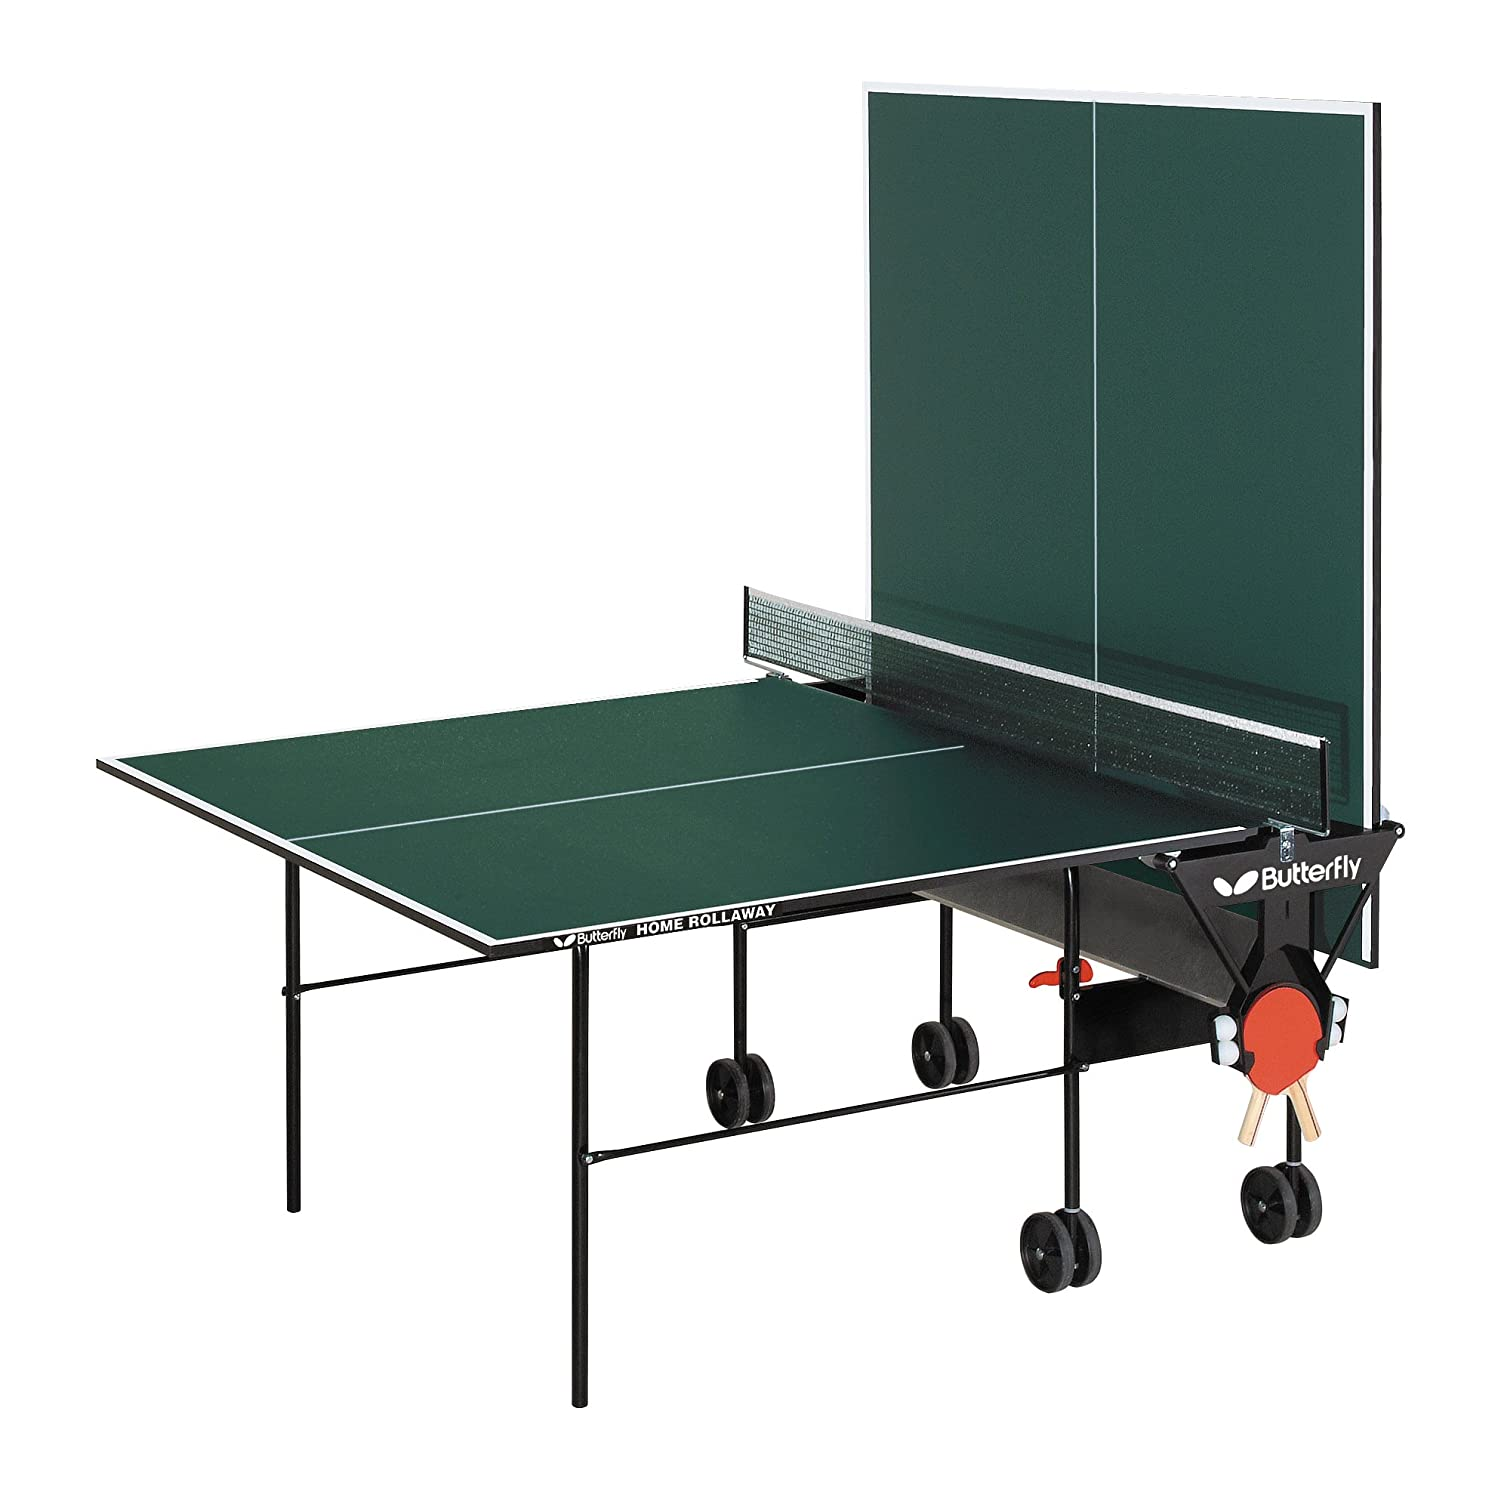 Amazon.com : Butterfly TR16 Home Rollaway Table Tennis Table ...